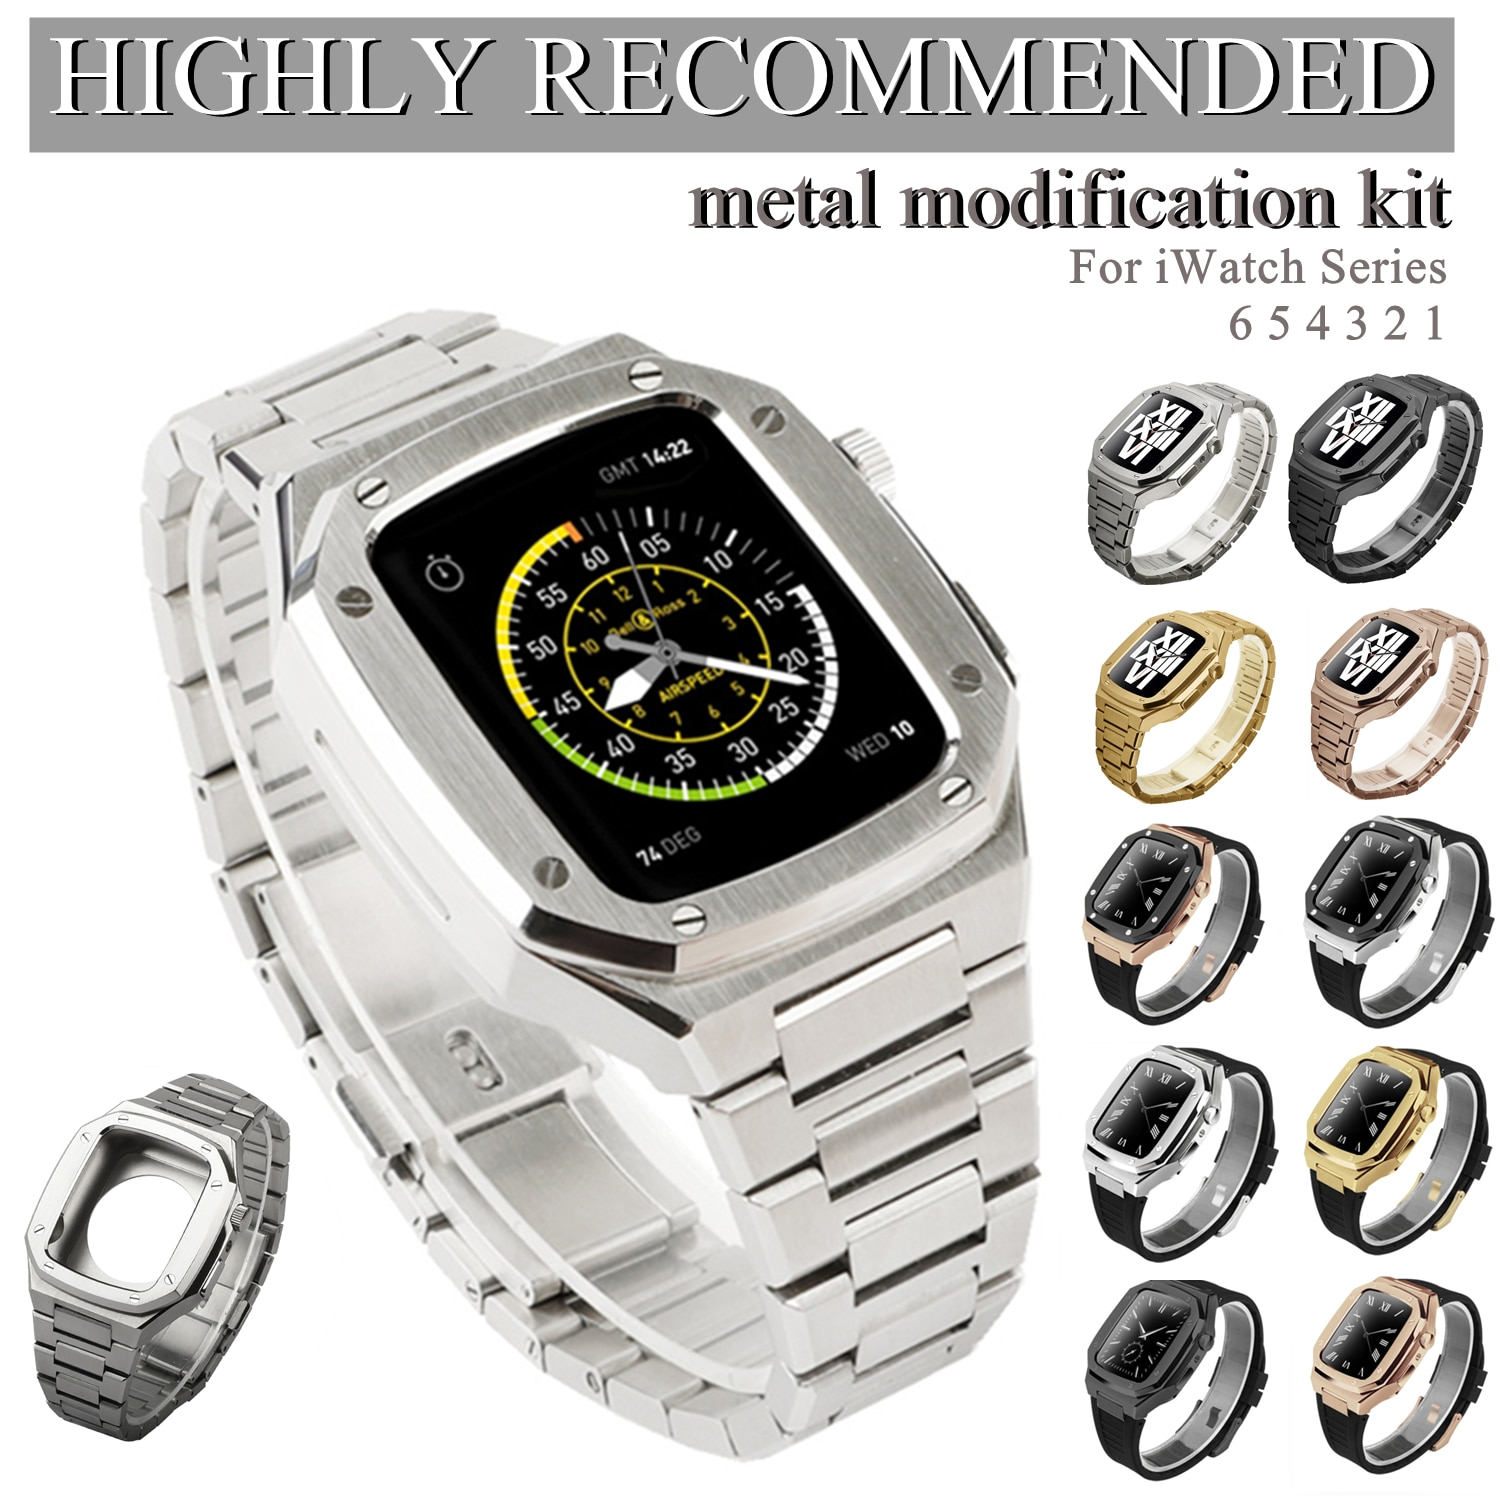 Latest Stainless Steel for Apple Watch Band 44mm 40mm Metal Strap for IWatch Series 6 SE 5 4 42mm 38mm Modification Noble Metal